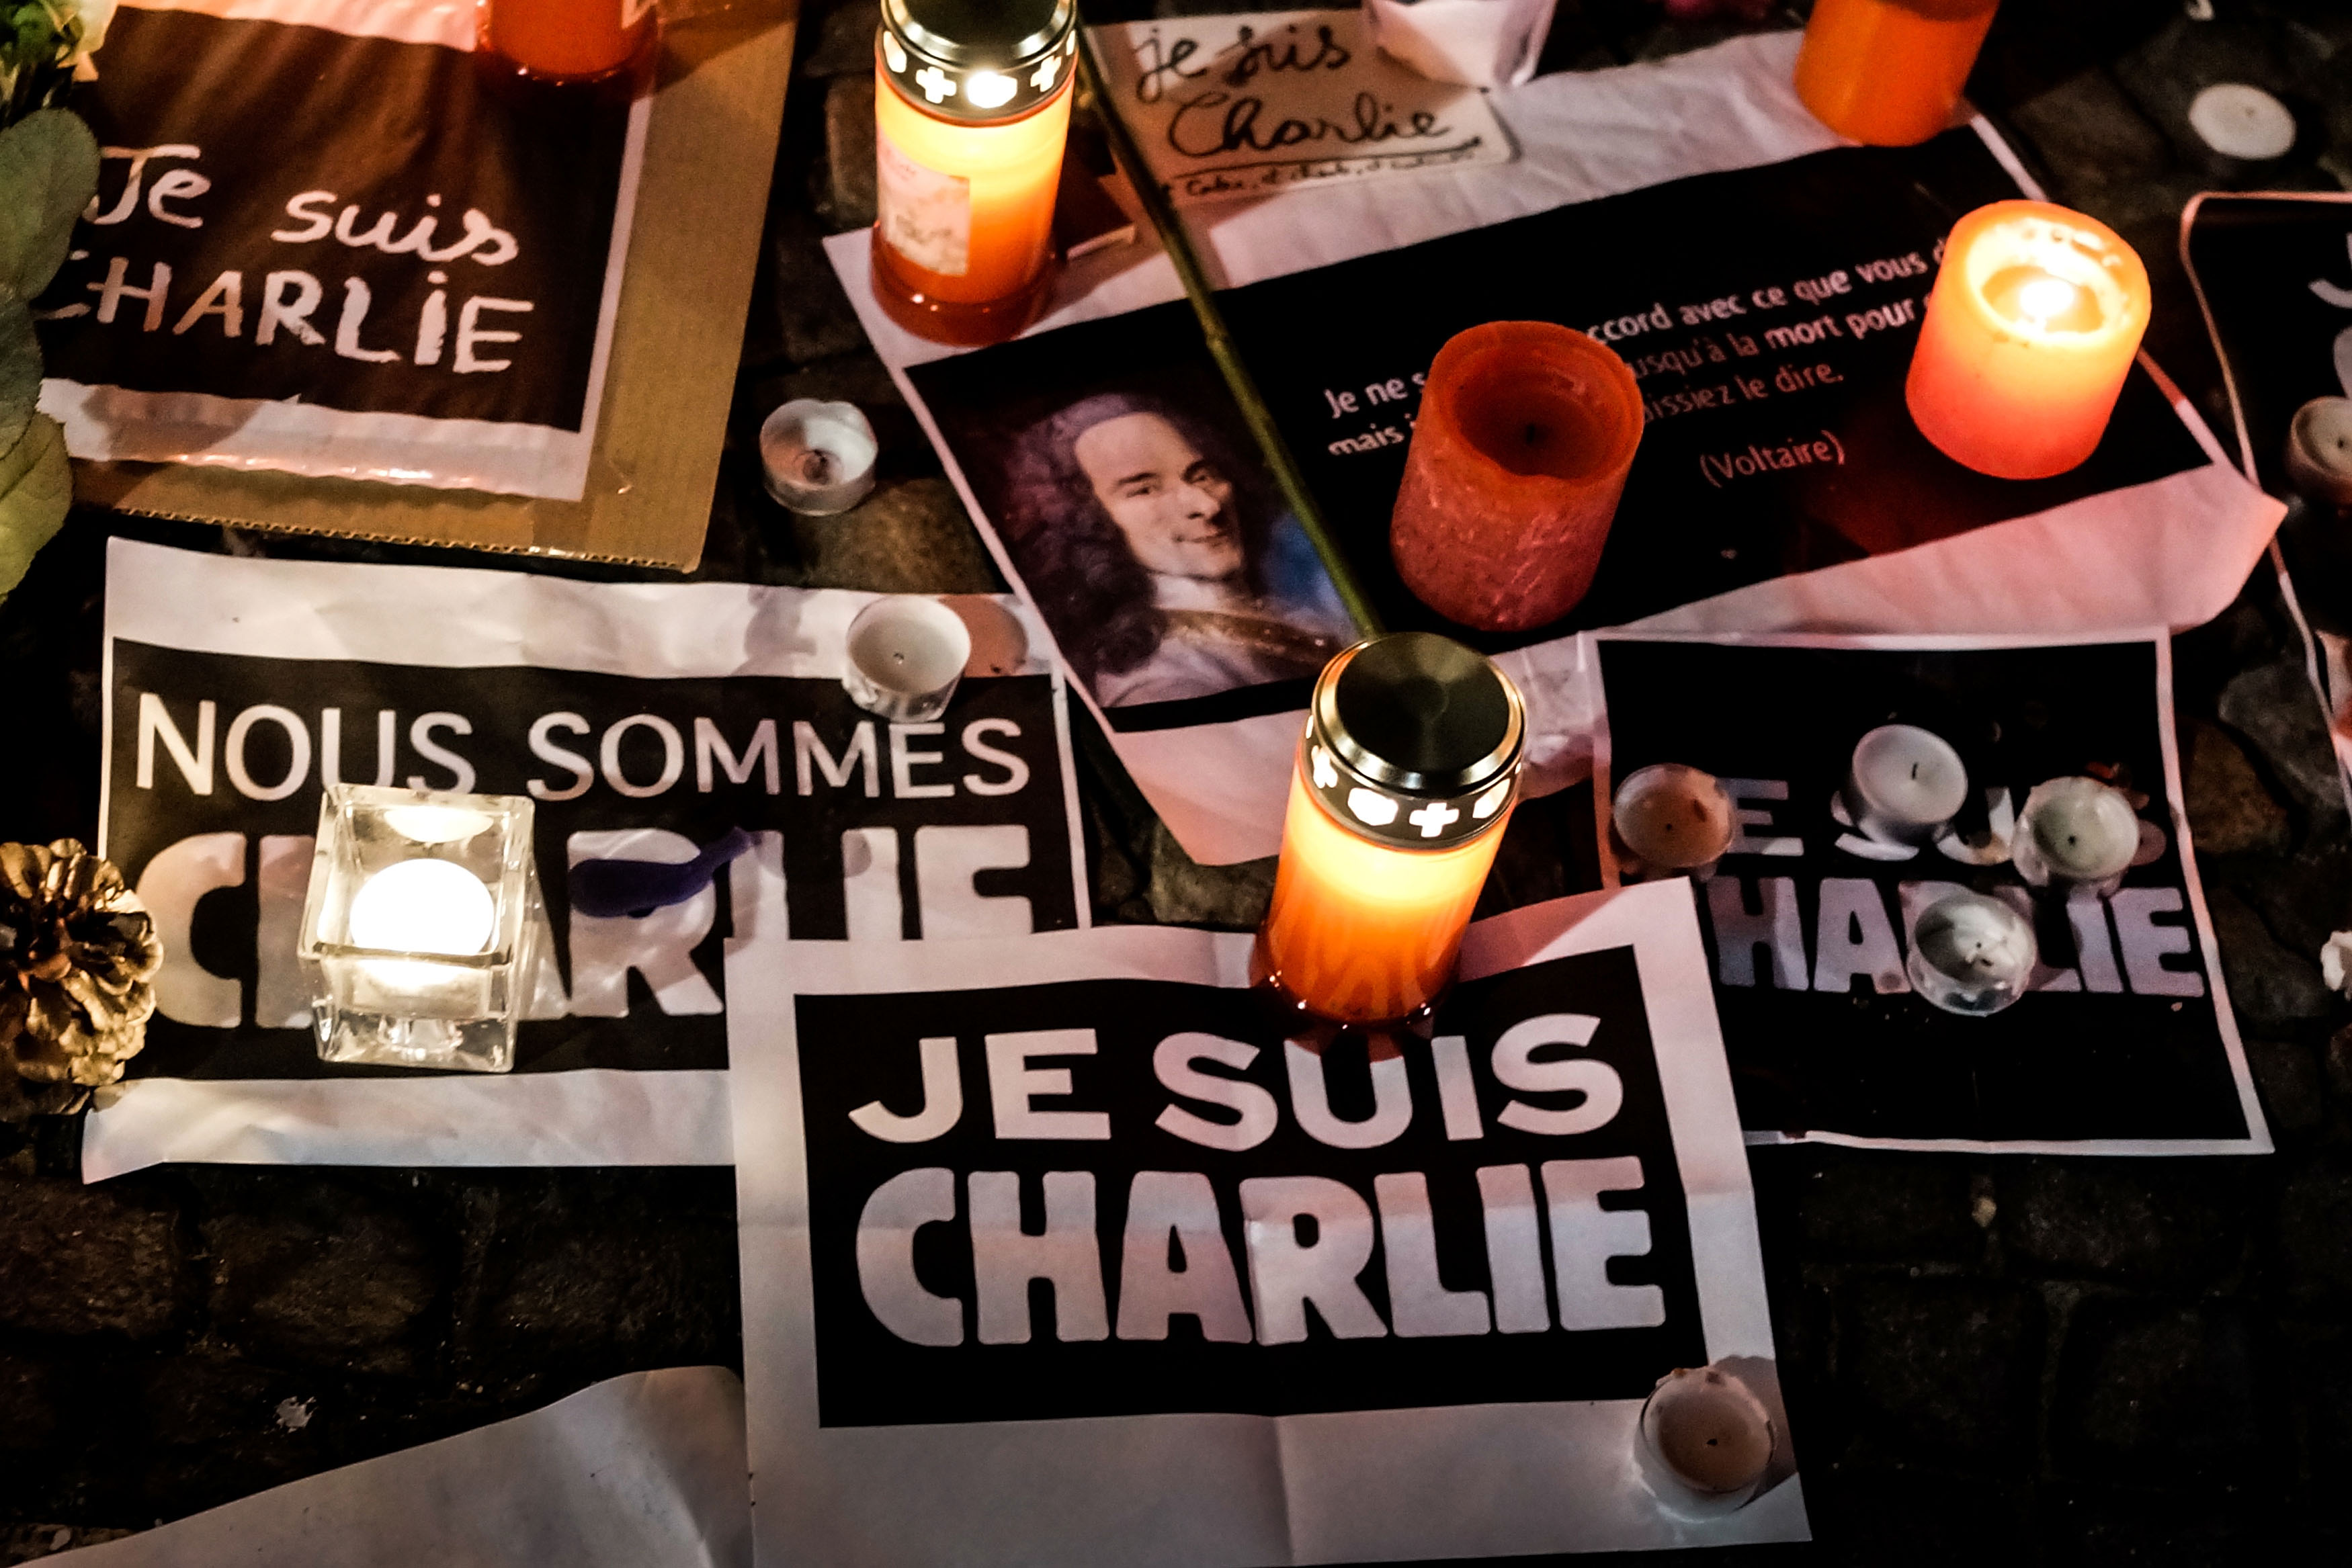 Papers with 'I am Charlie' displayed are left near candles at a vigil in front of the French Embassy following the terrorist attack in Paris on January 7, 2015 in Berlin, Germany.